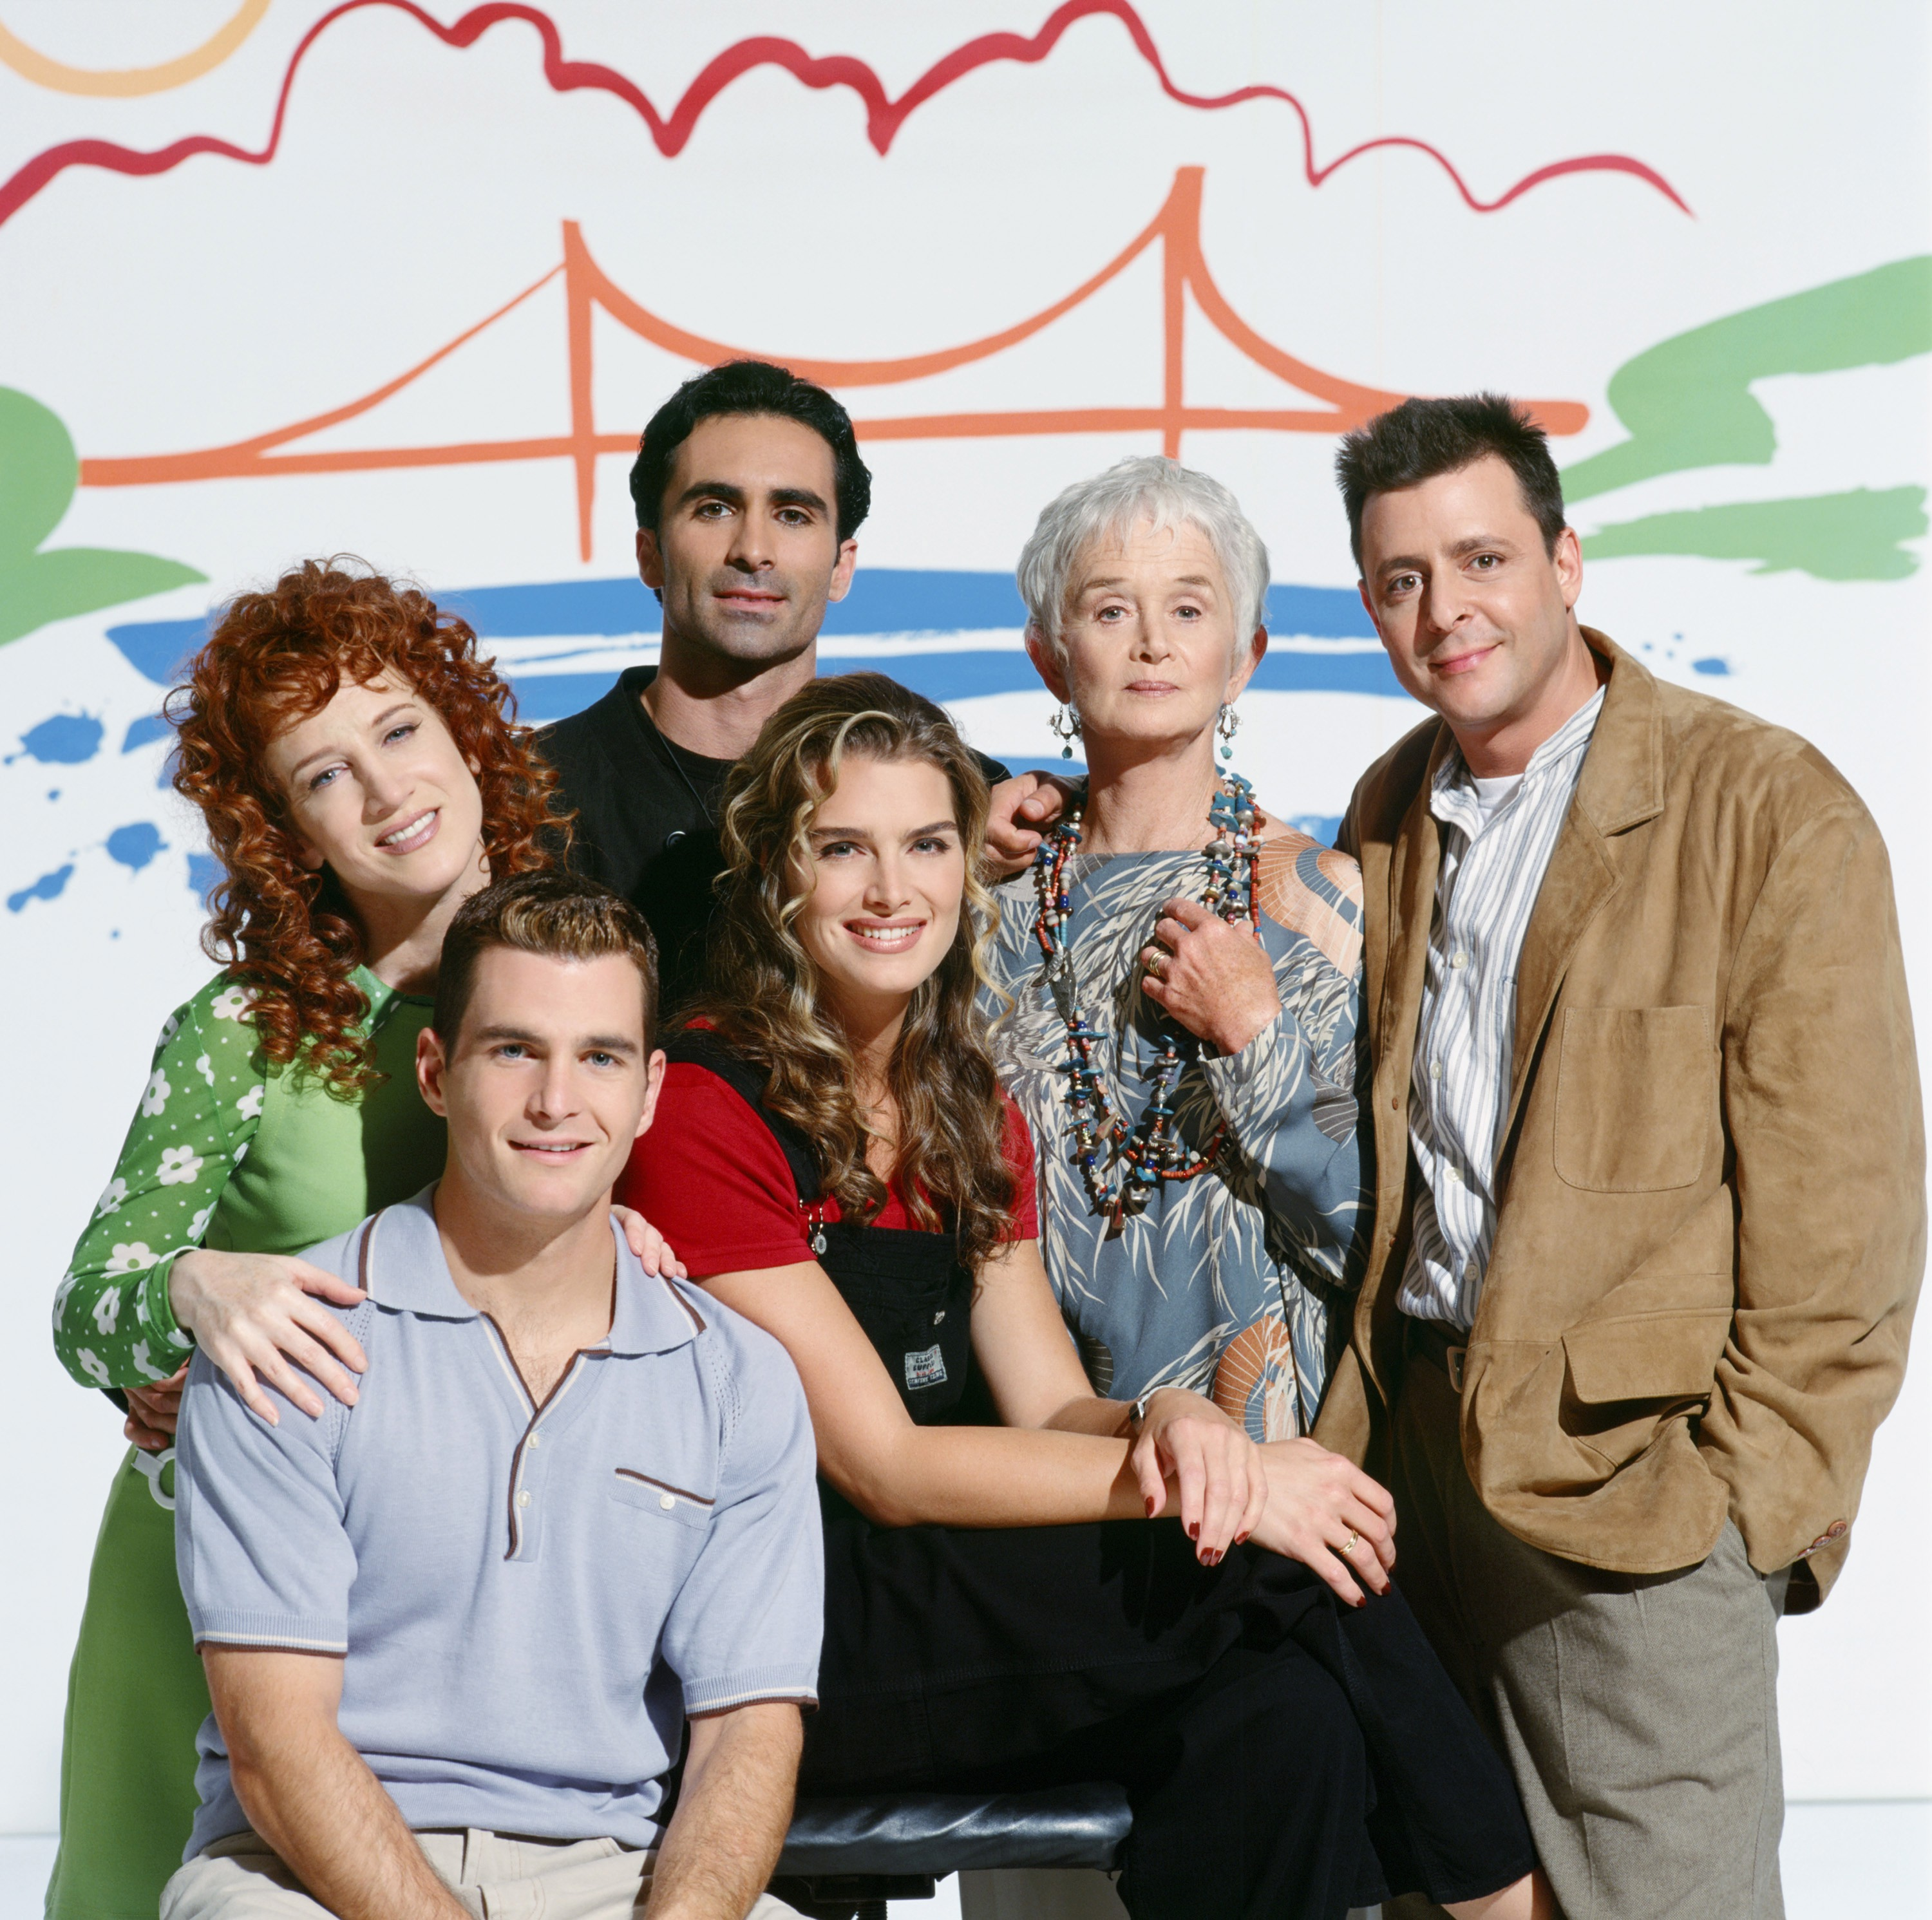 Kathy Griffin, Brooke Shields, Judd Nelson, Barbara Barrie, Nestor Carbonell, Suddenly Susan